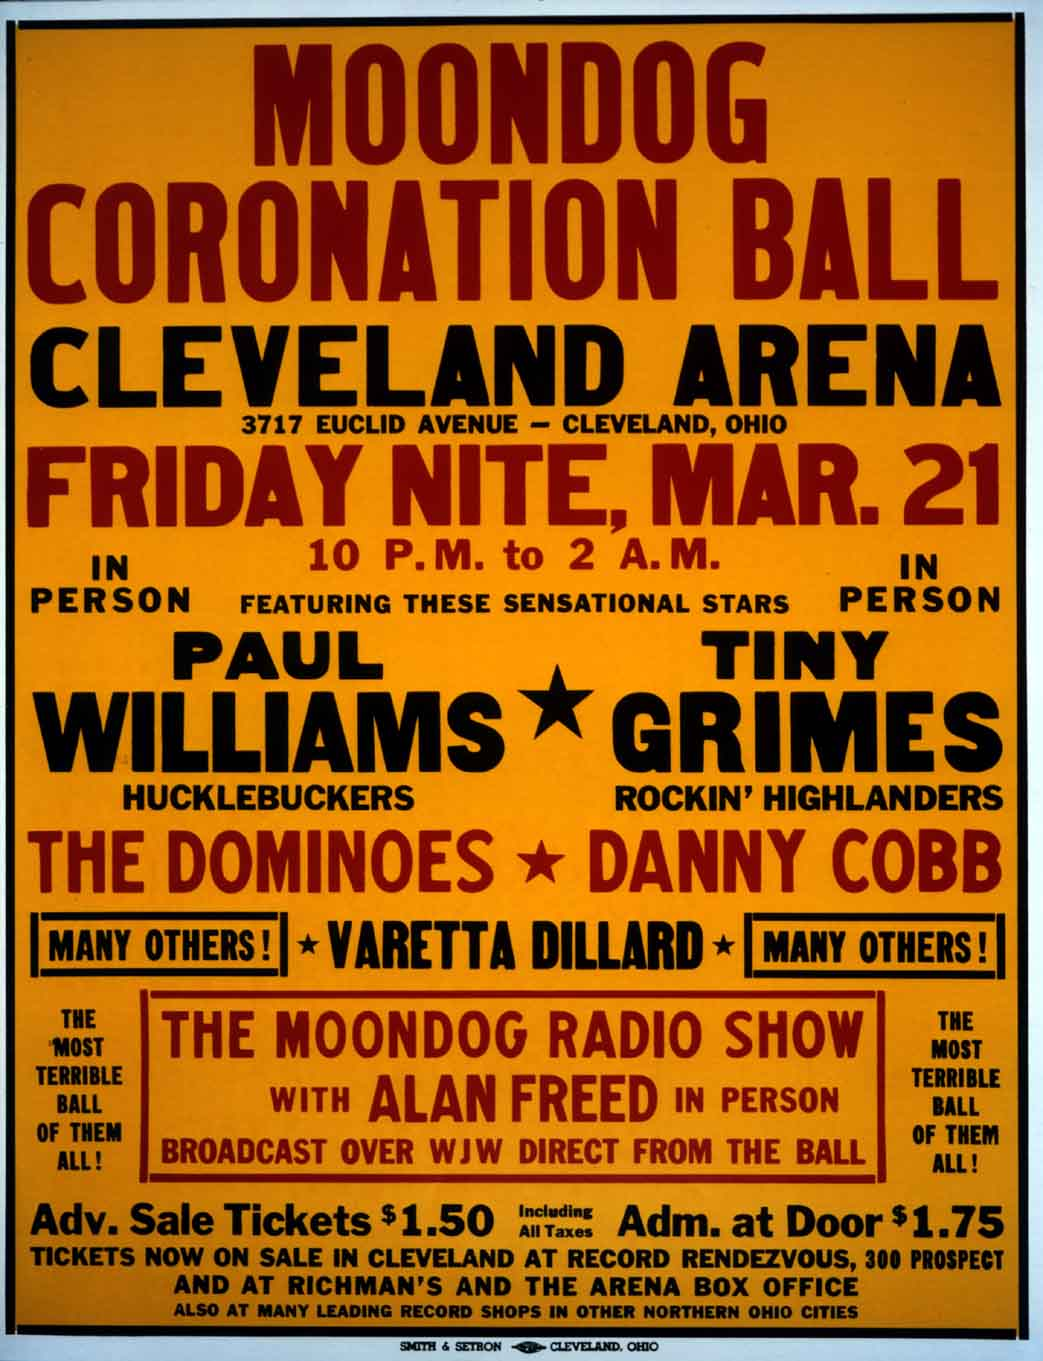 Alan Freed Moondog Coronation Ball